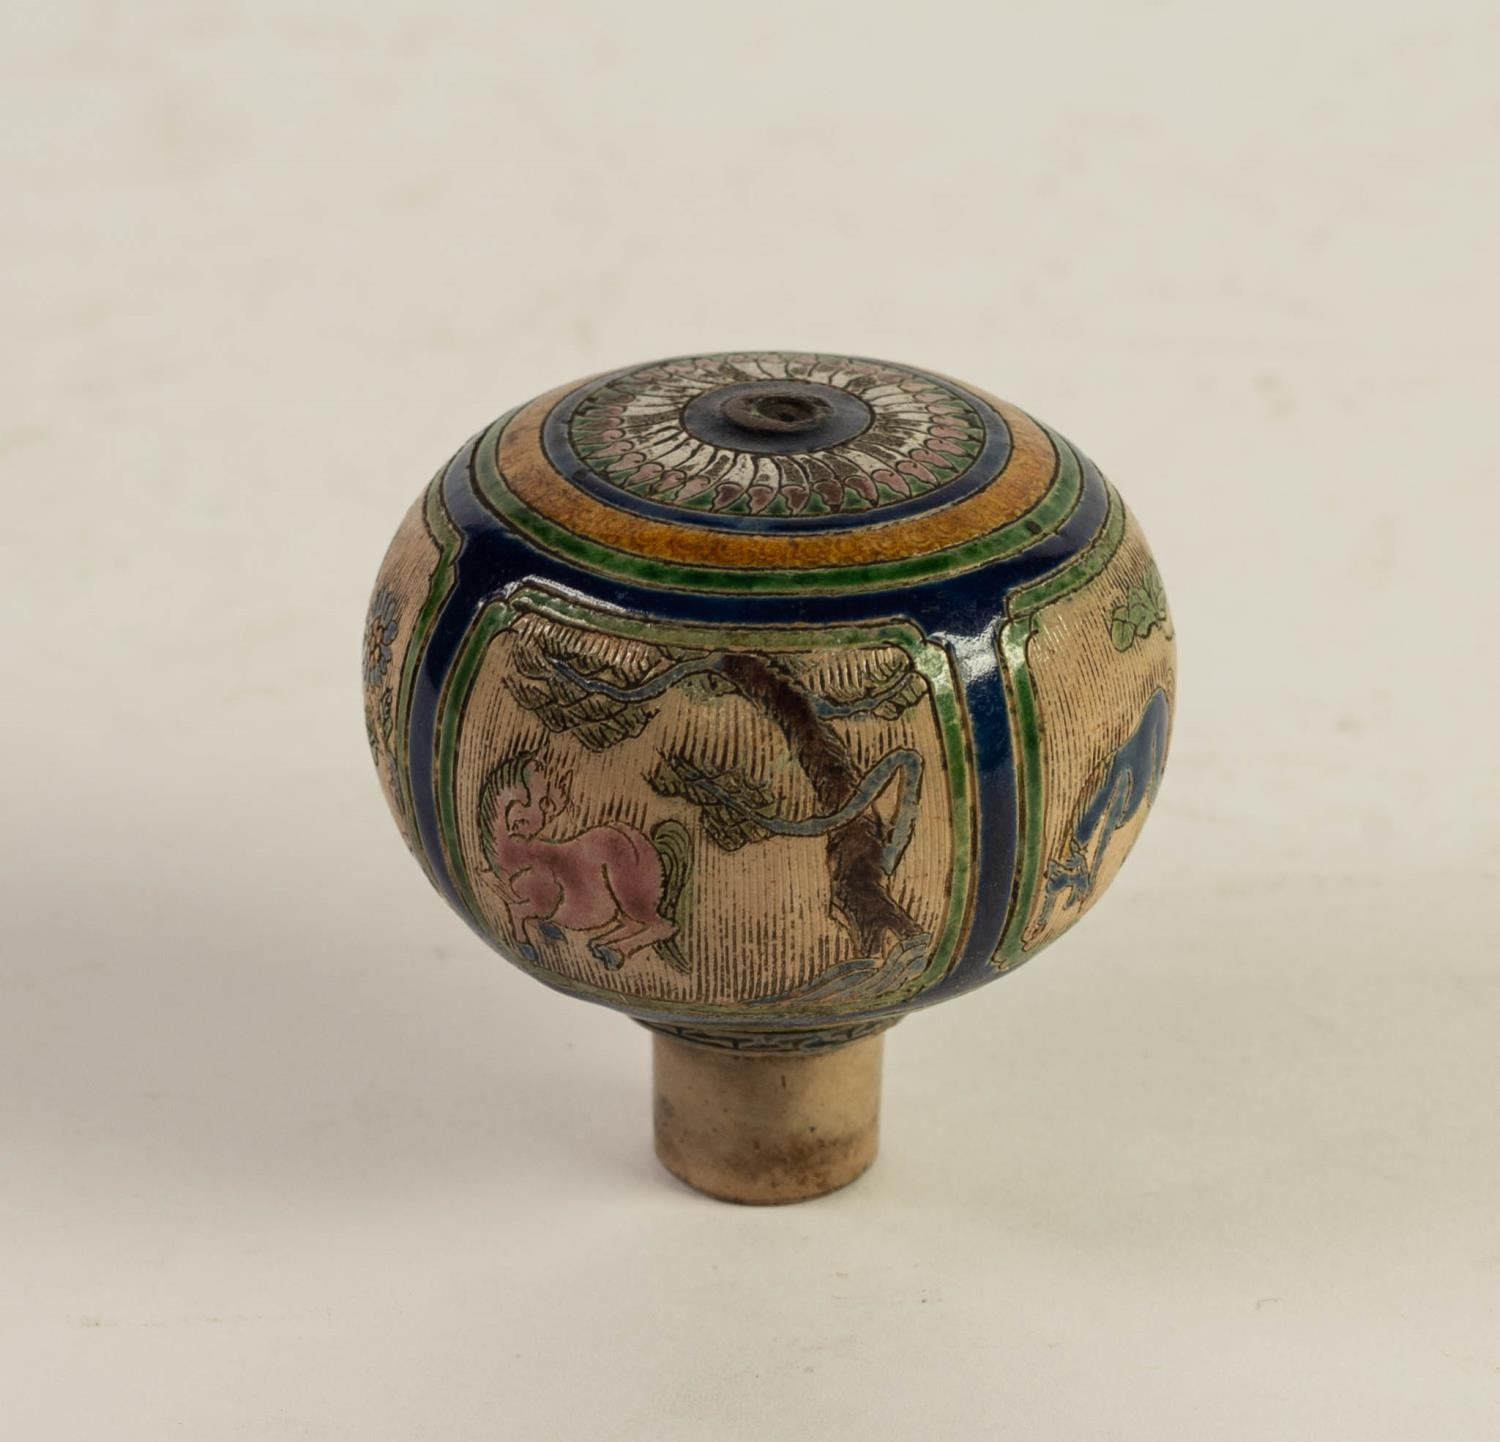 CHINESE QING DYNASTY PORCELANEOUS ORBICULAR KNOB OR FINIAL, incised and enamelled with four panels - Image 4 of 6